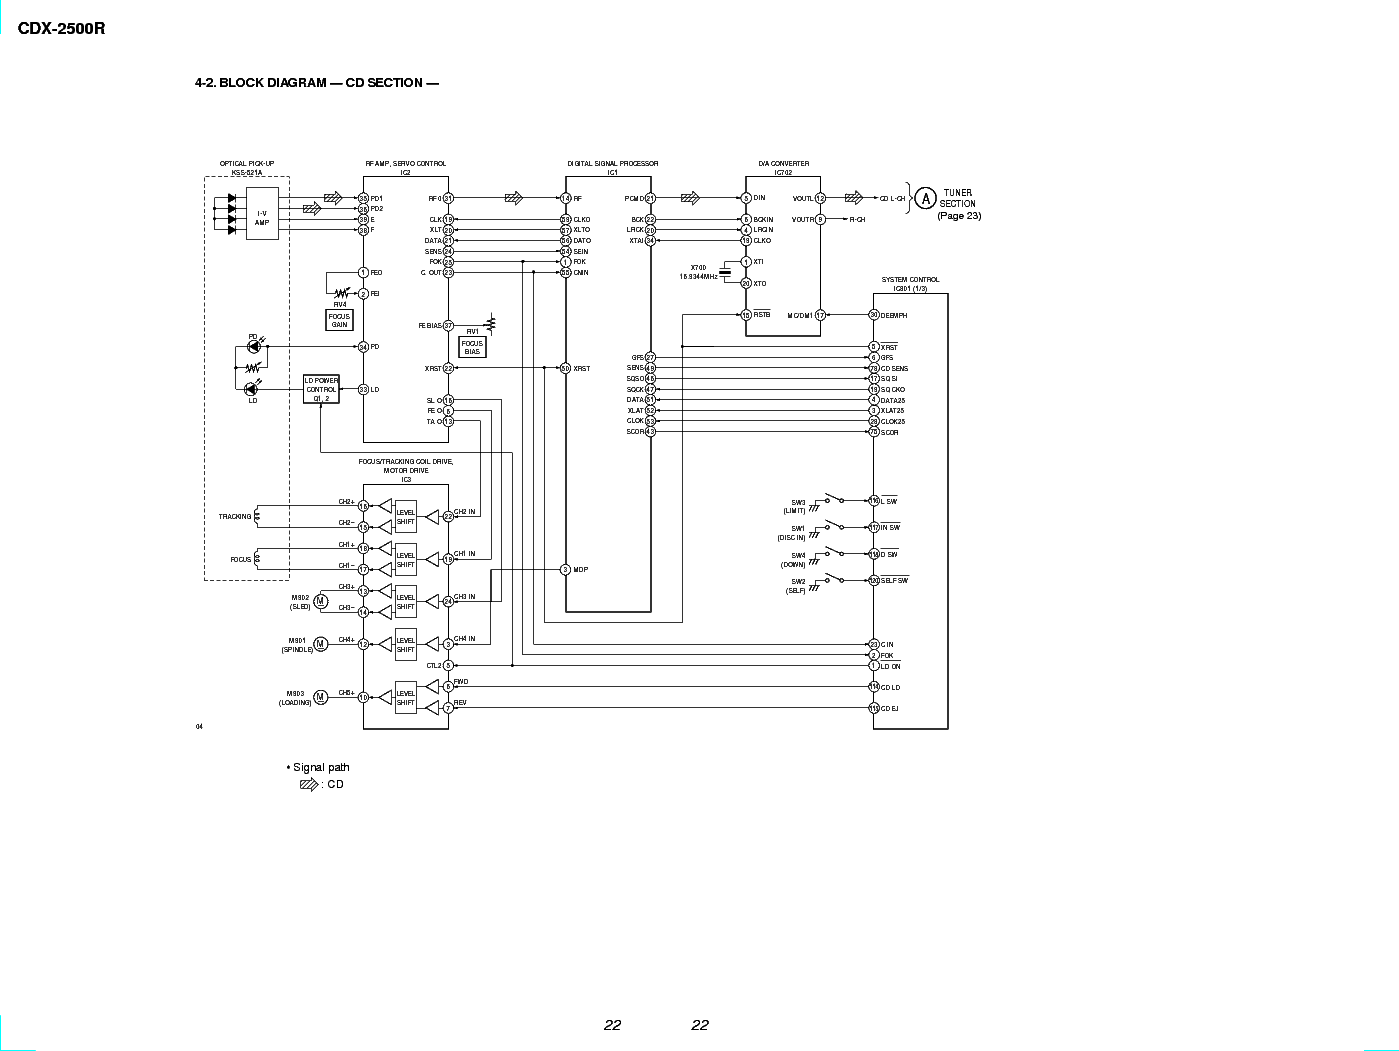 sony car stereo wiring diagram cdx m8815x sony cdx 2500r service manual download, schematics, eeprom ... quick connect sony car stereo wiring diagram